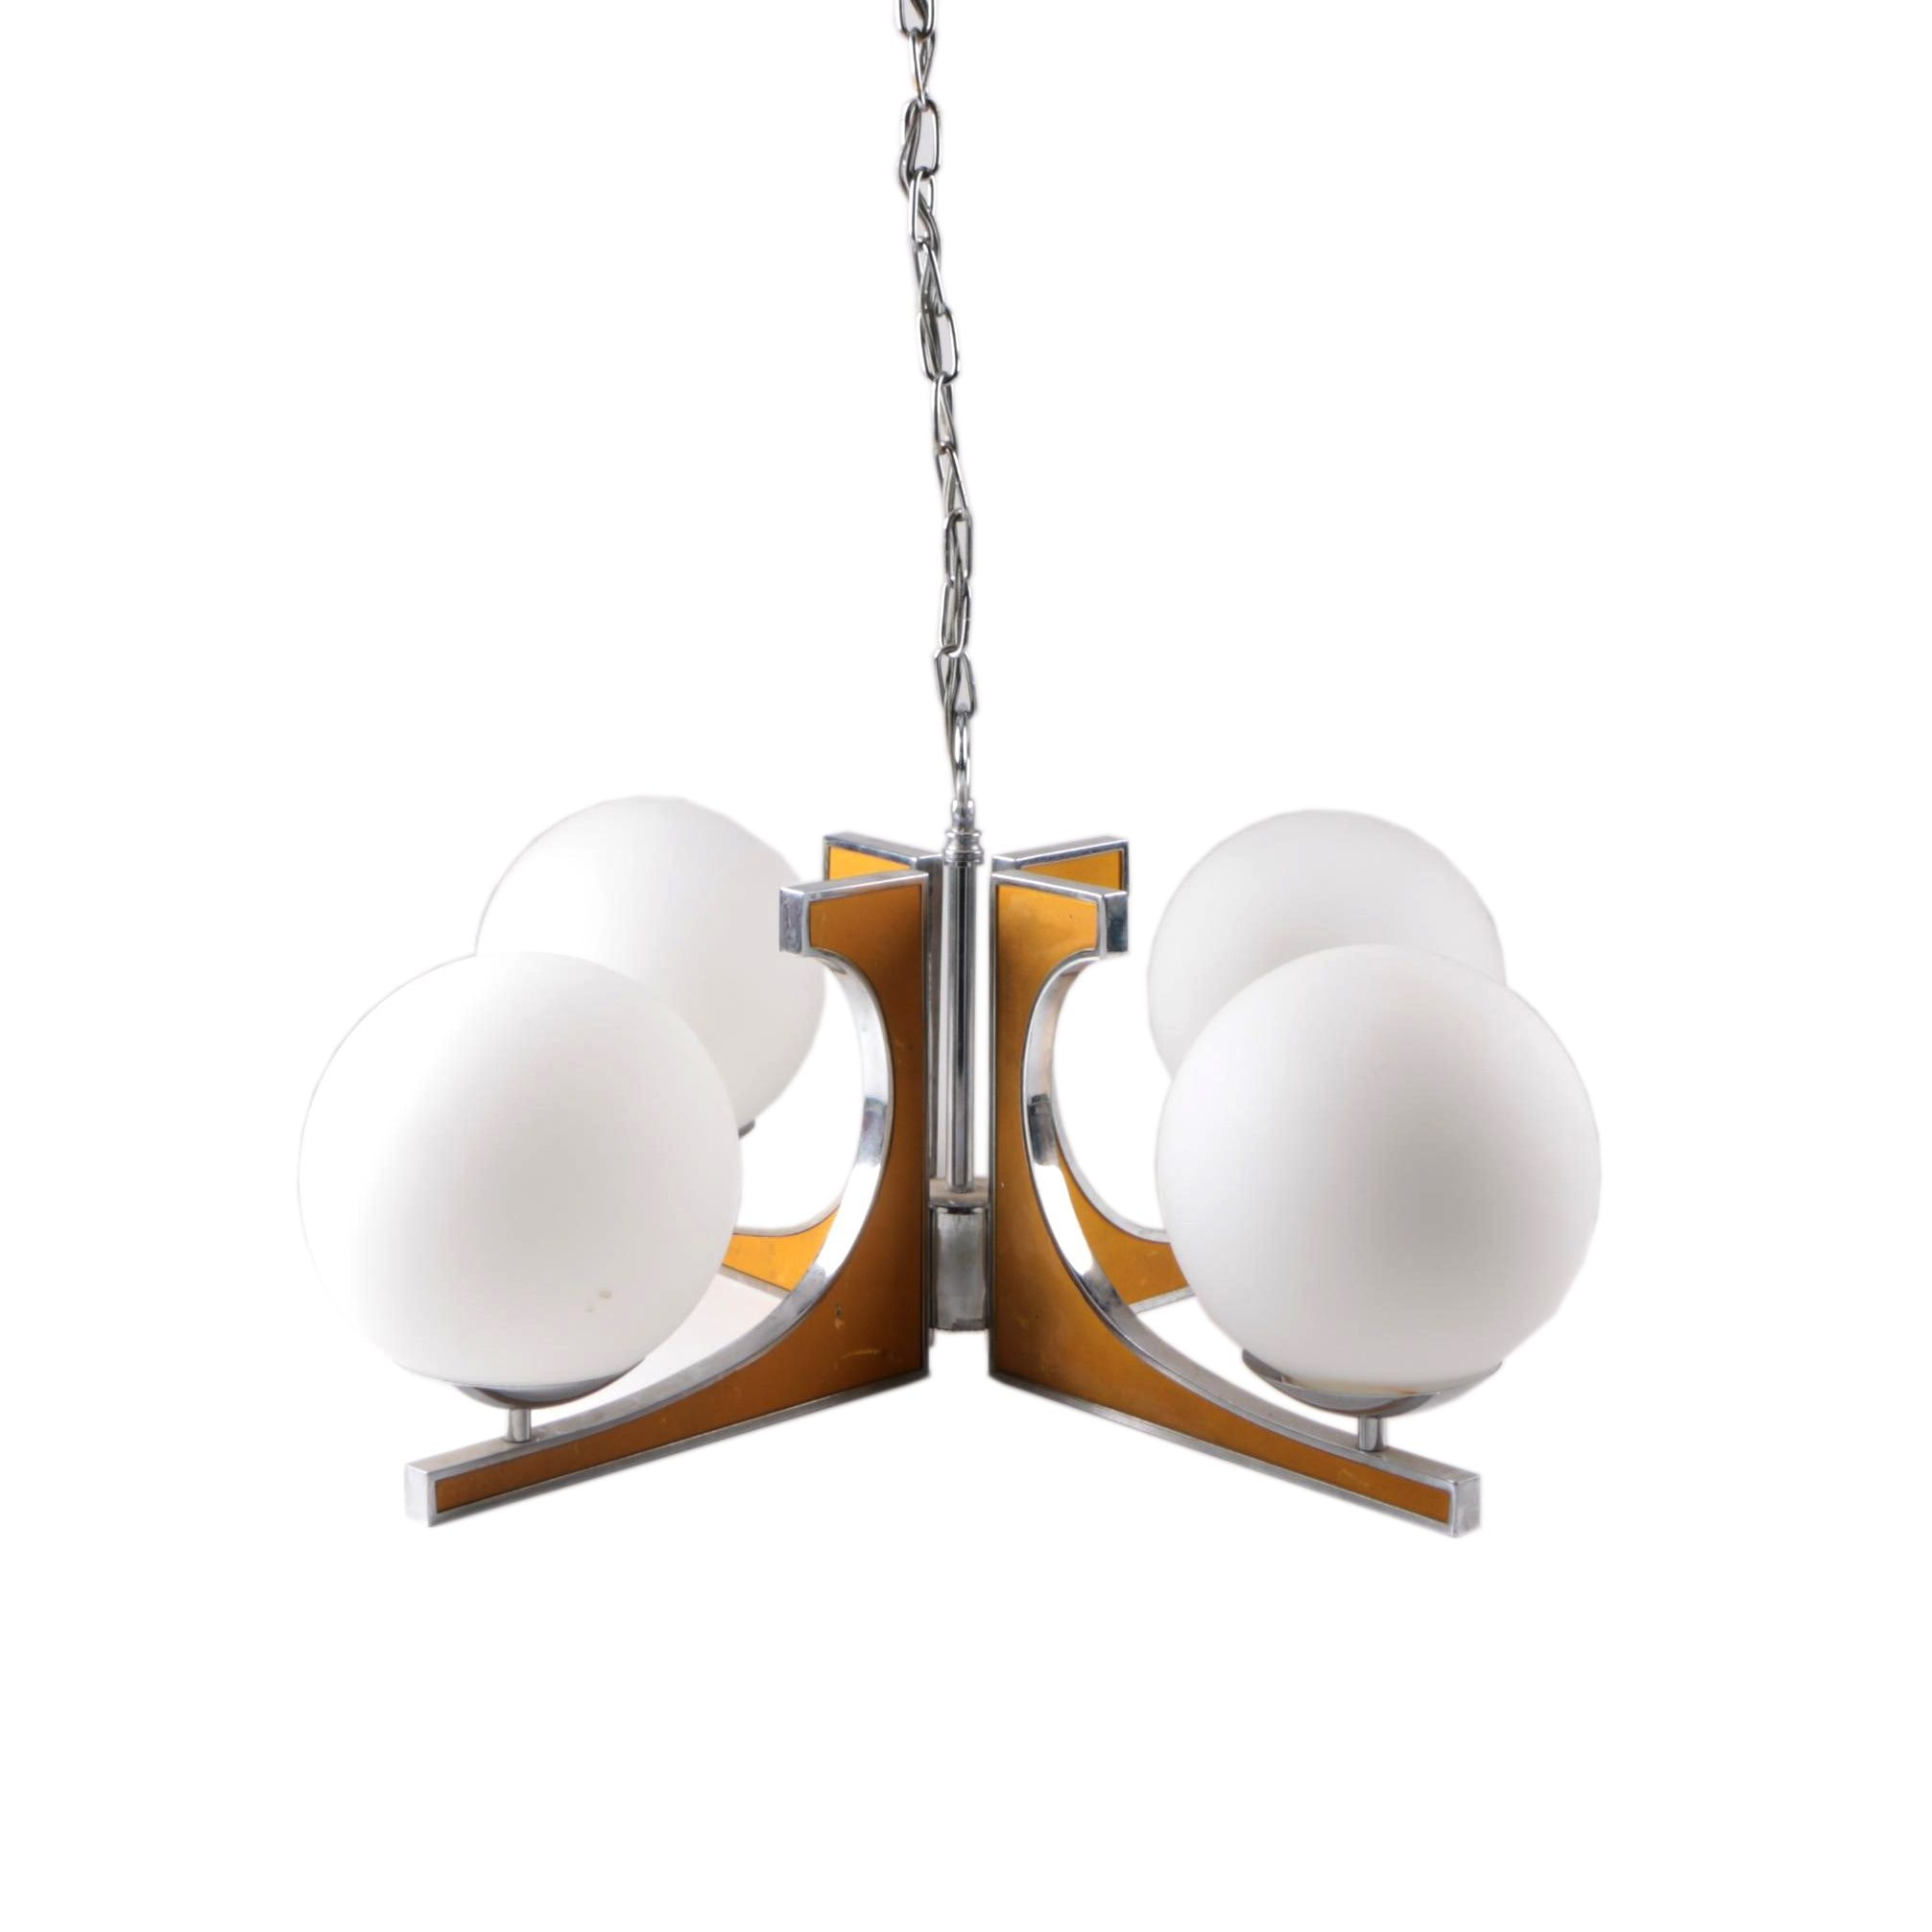 Mid Century Modern Four-Arm Chandelier by Moe Light